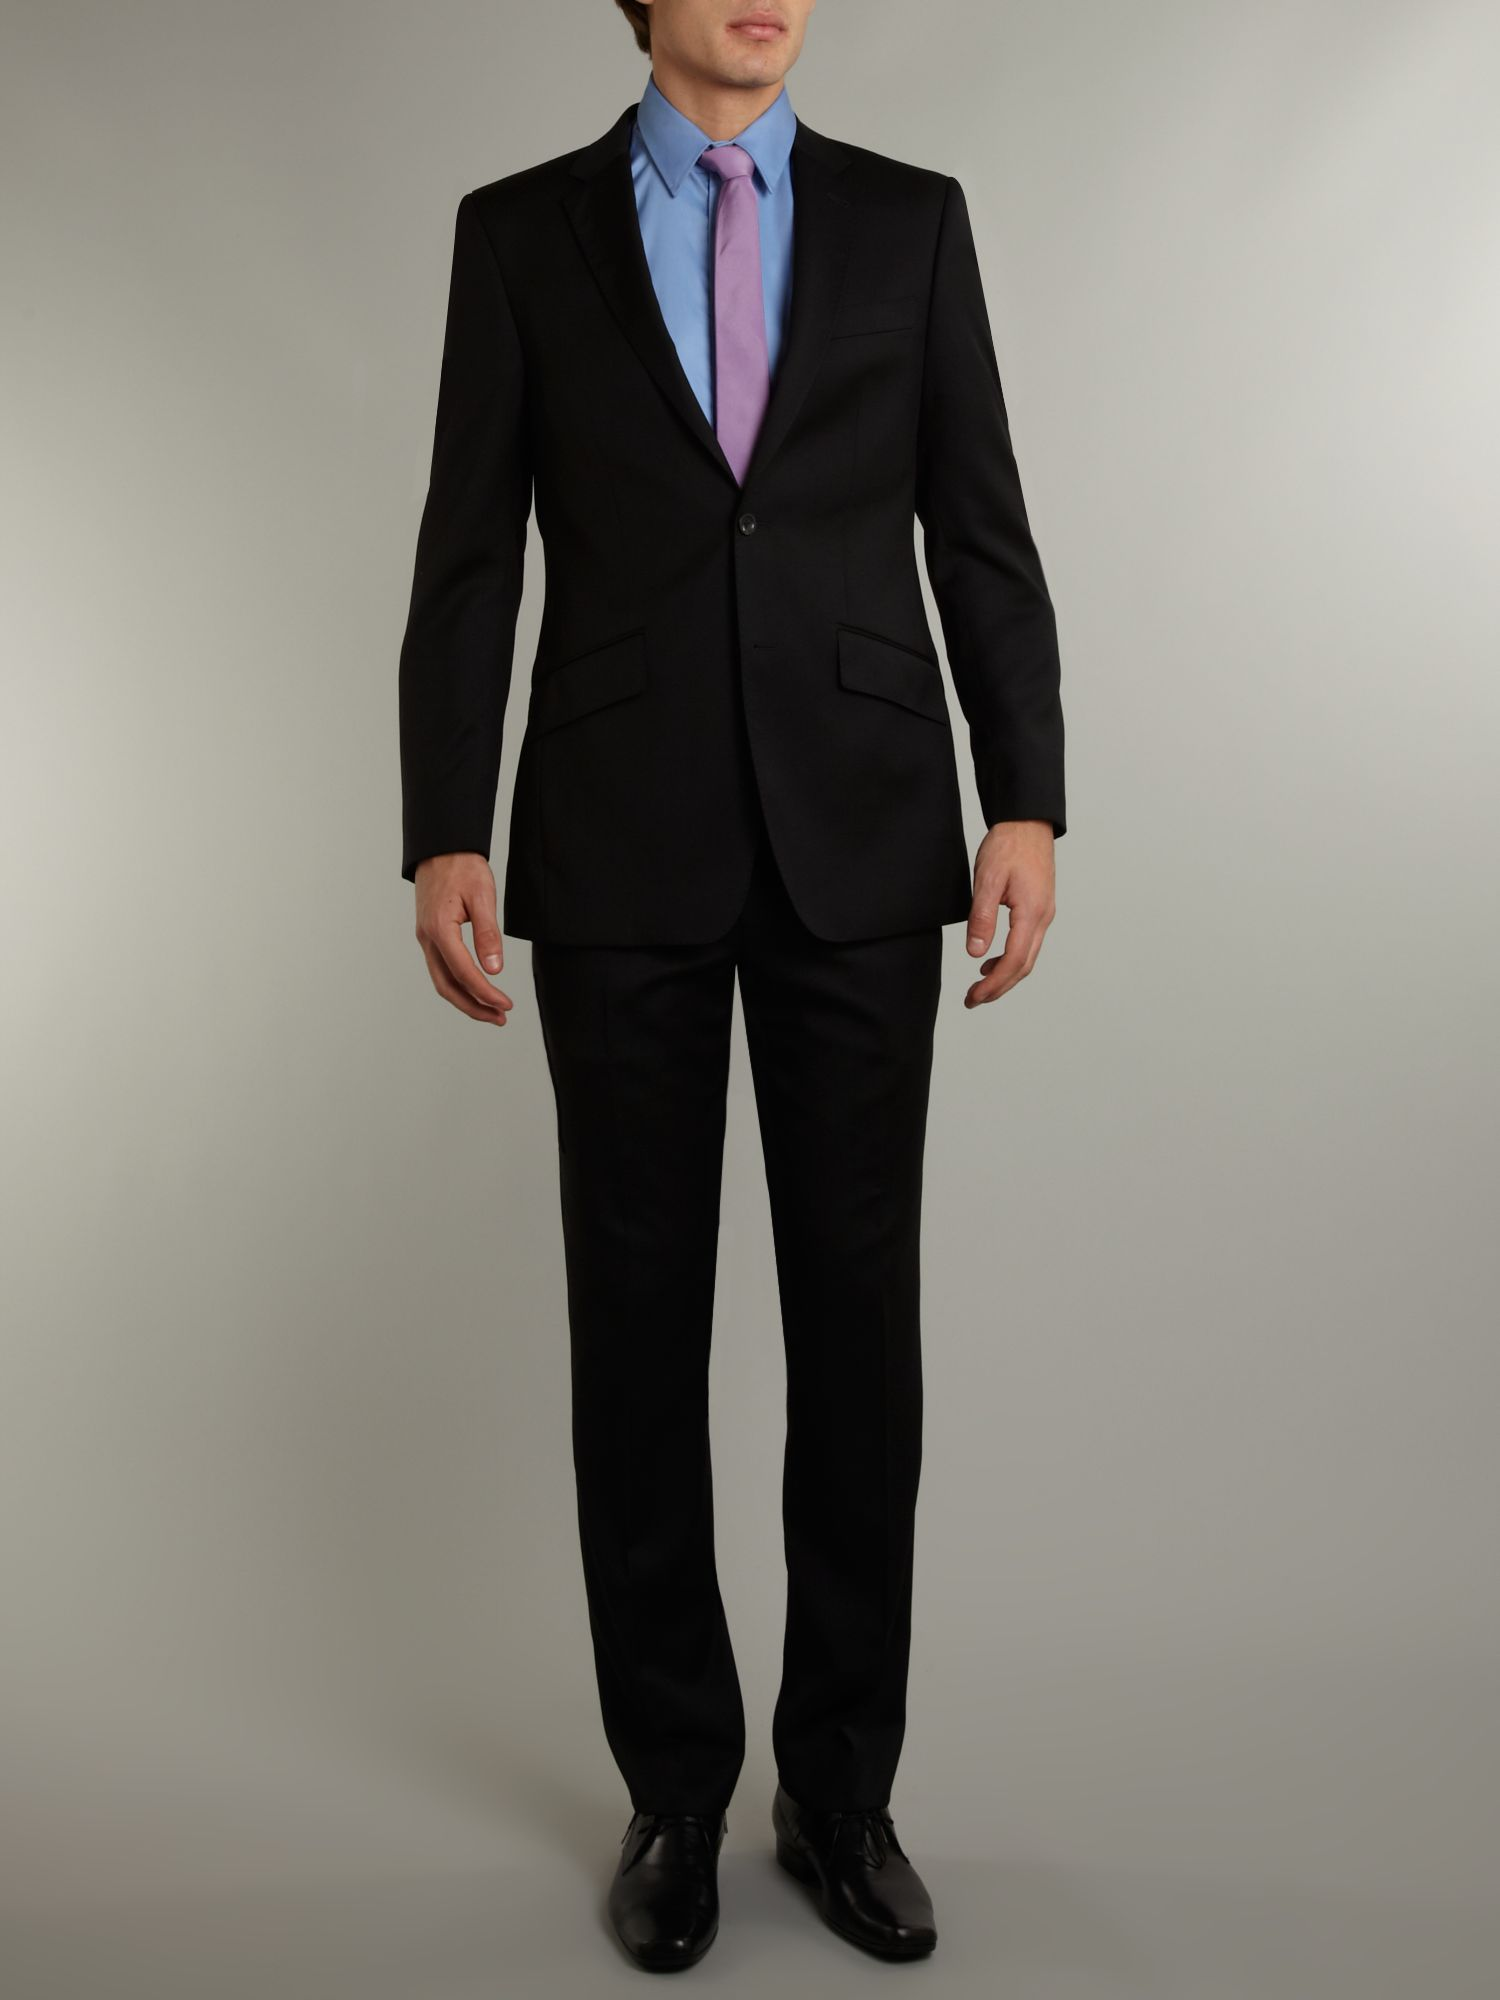 Regular fit wool suit